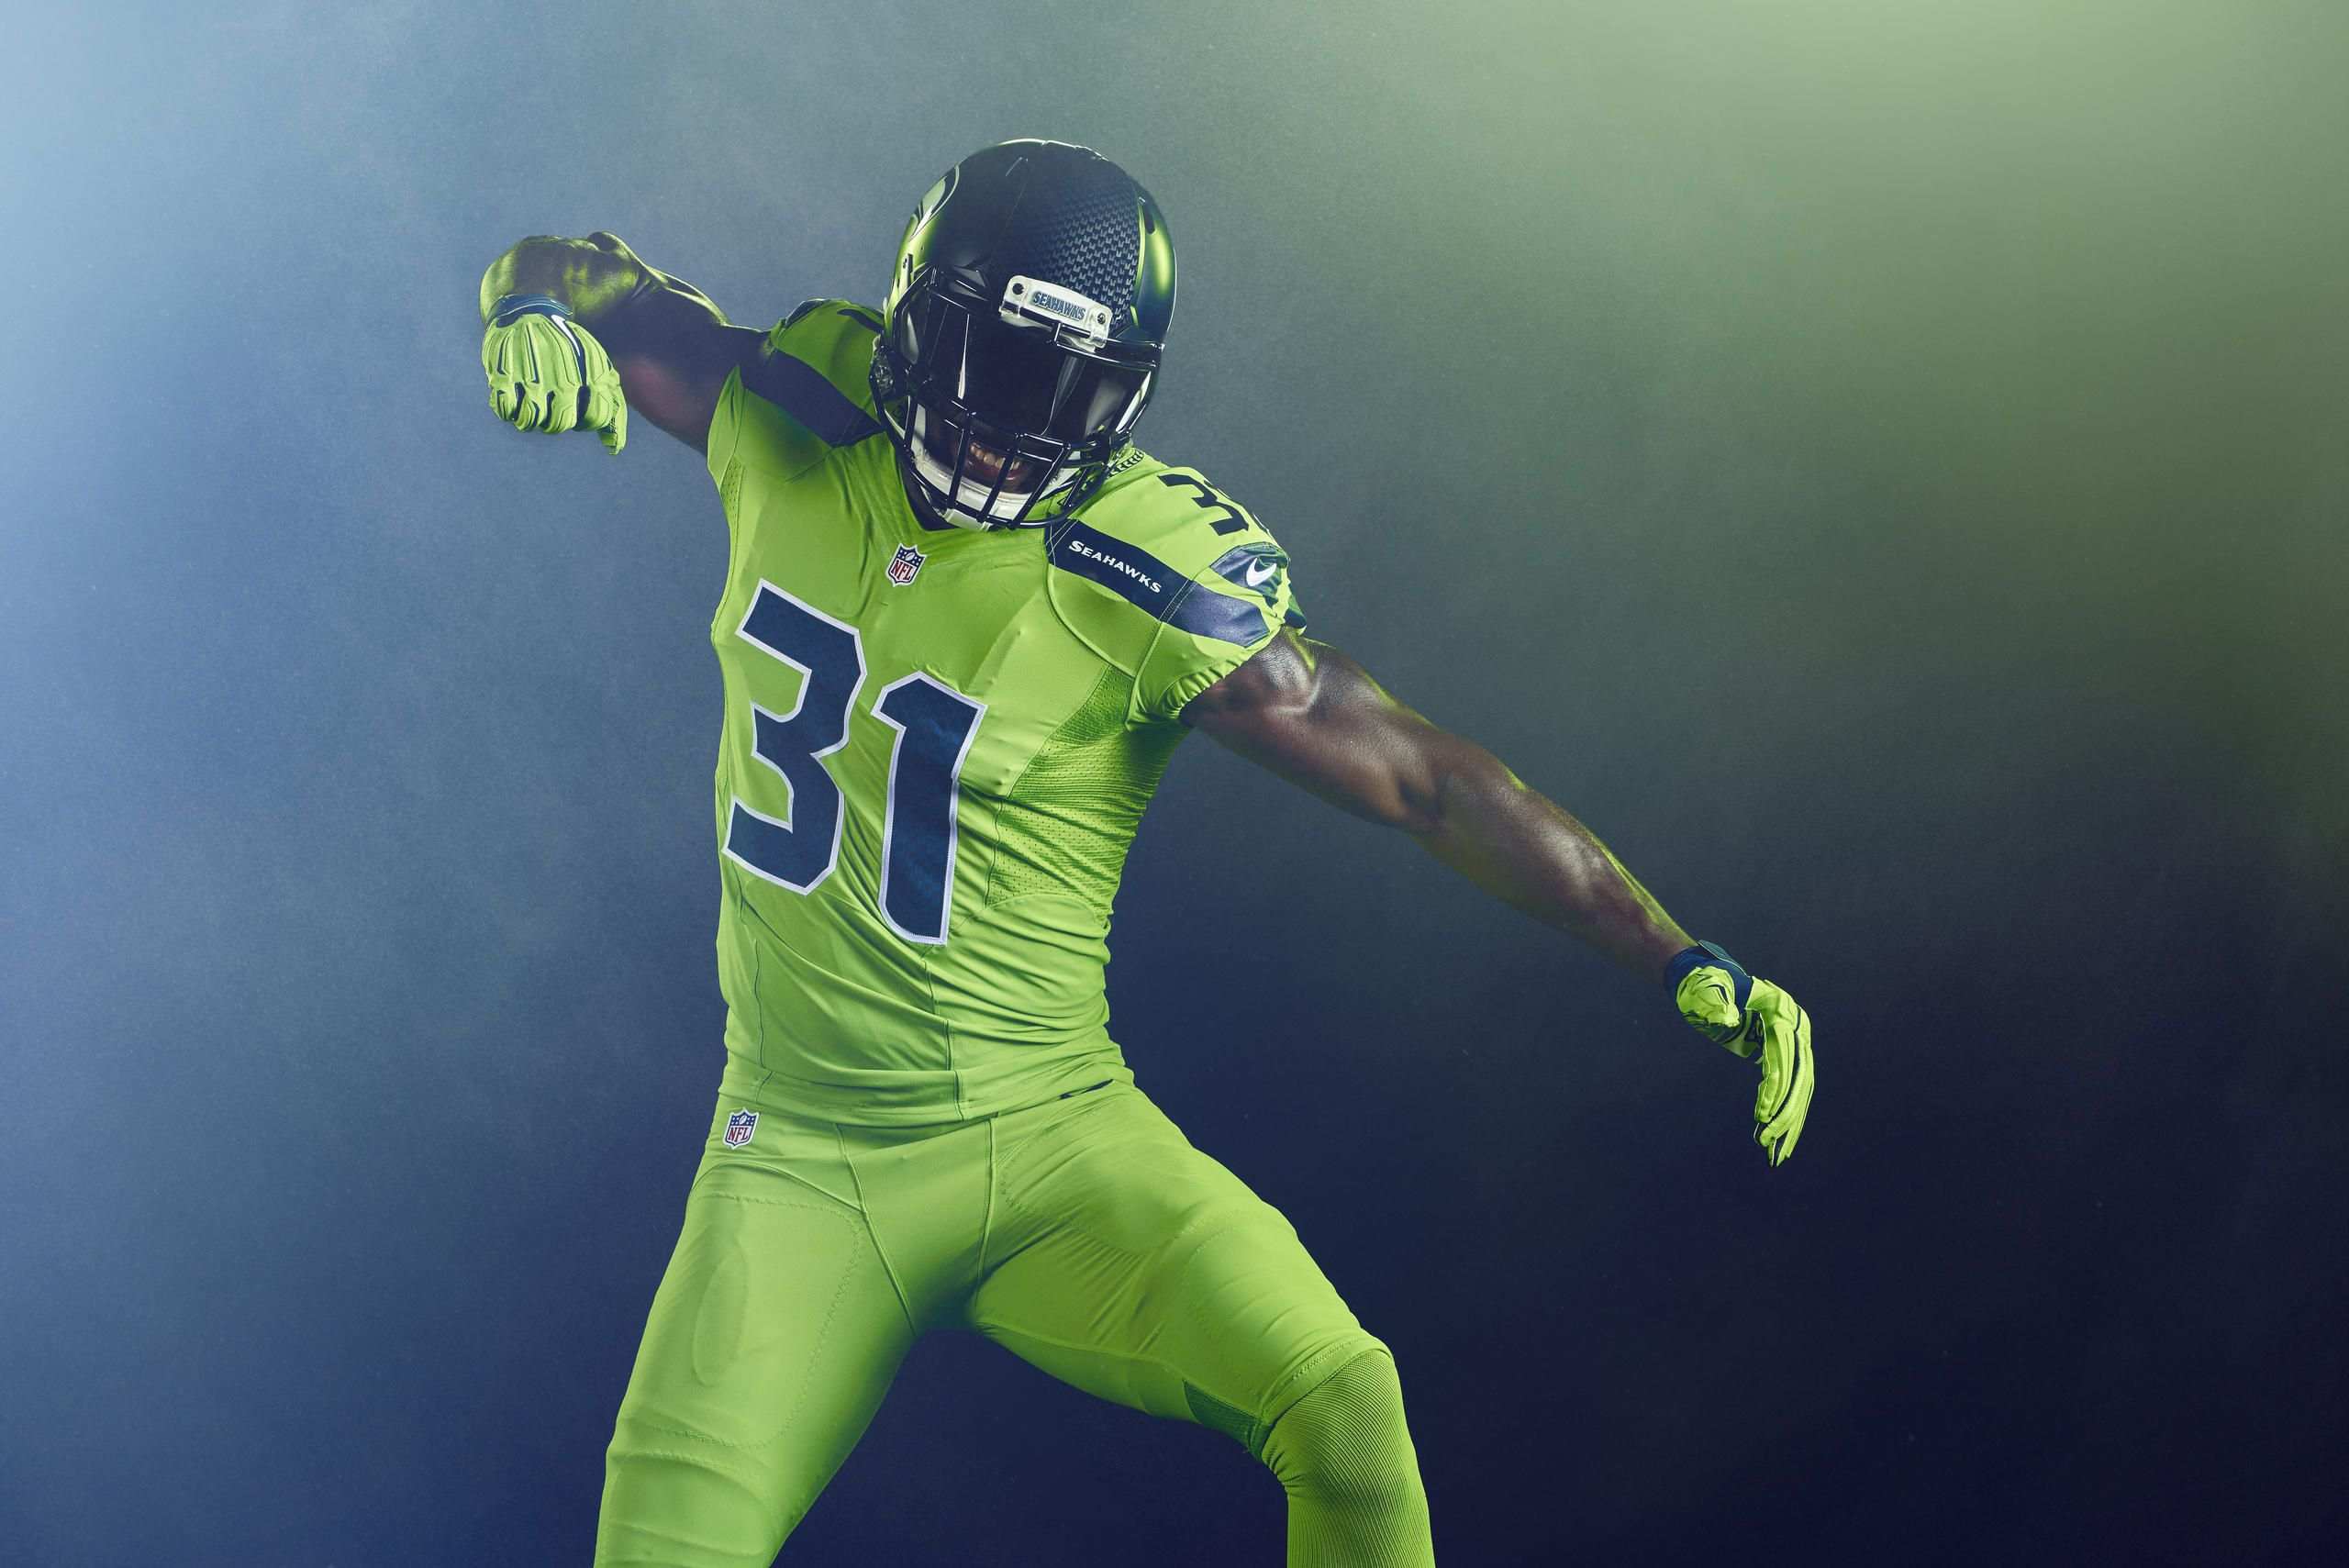 The Seahawks introduced a new alternate uniform on Tuesday that they will  wear in Week 15 against the Los Angeles Rams. f954caa76